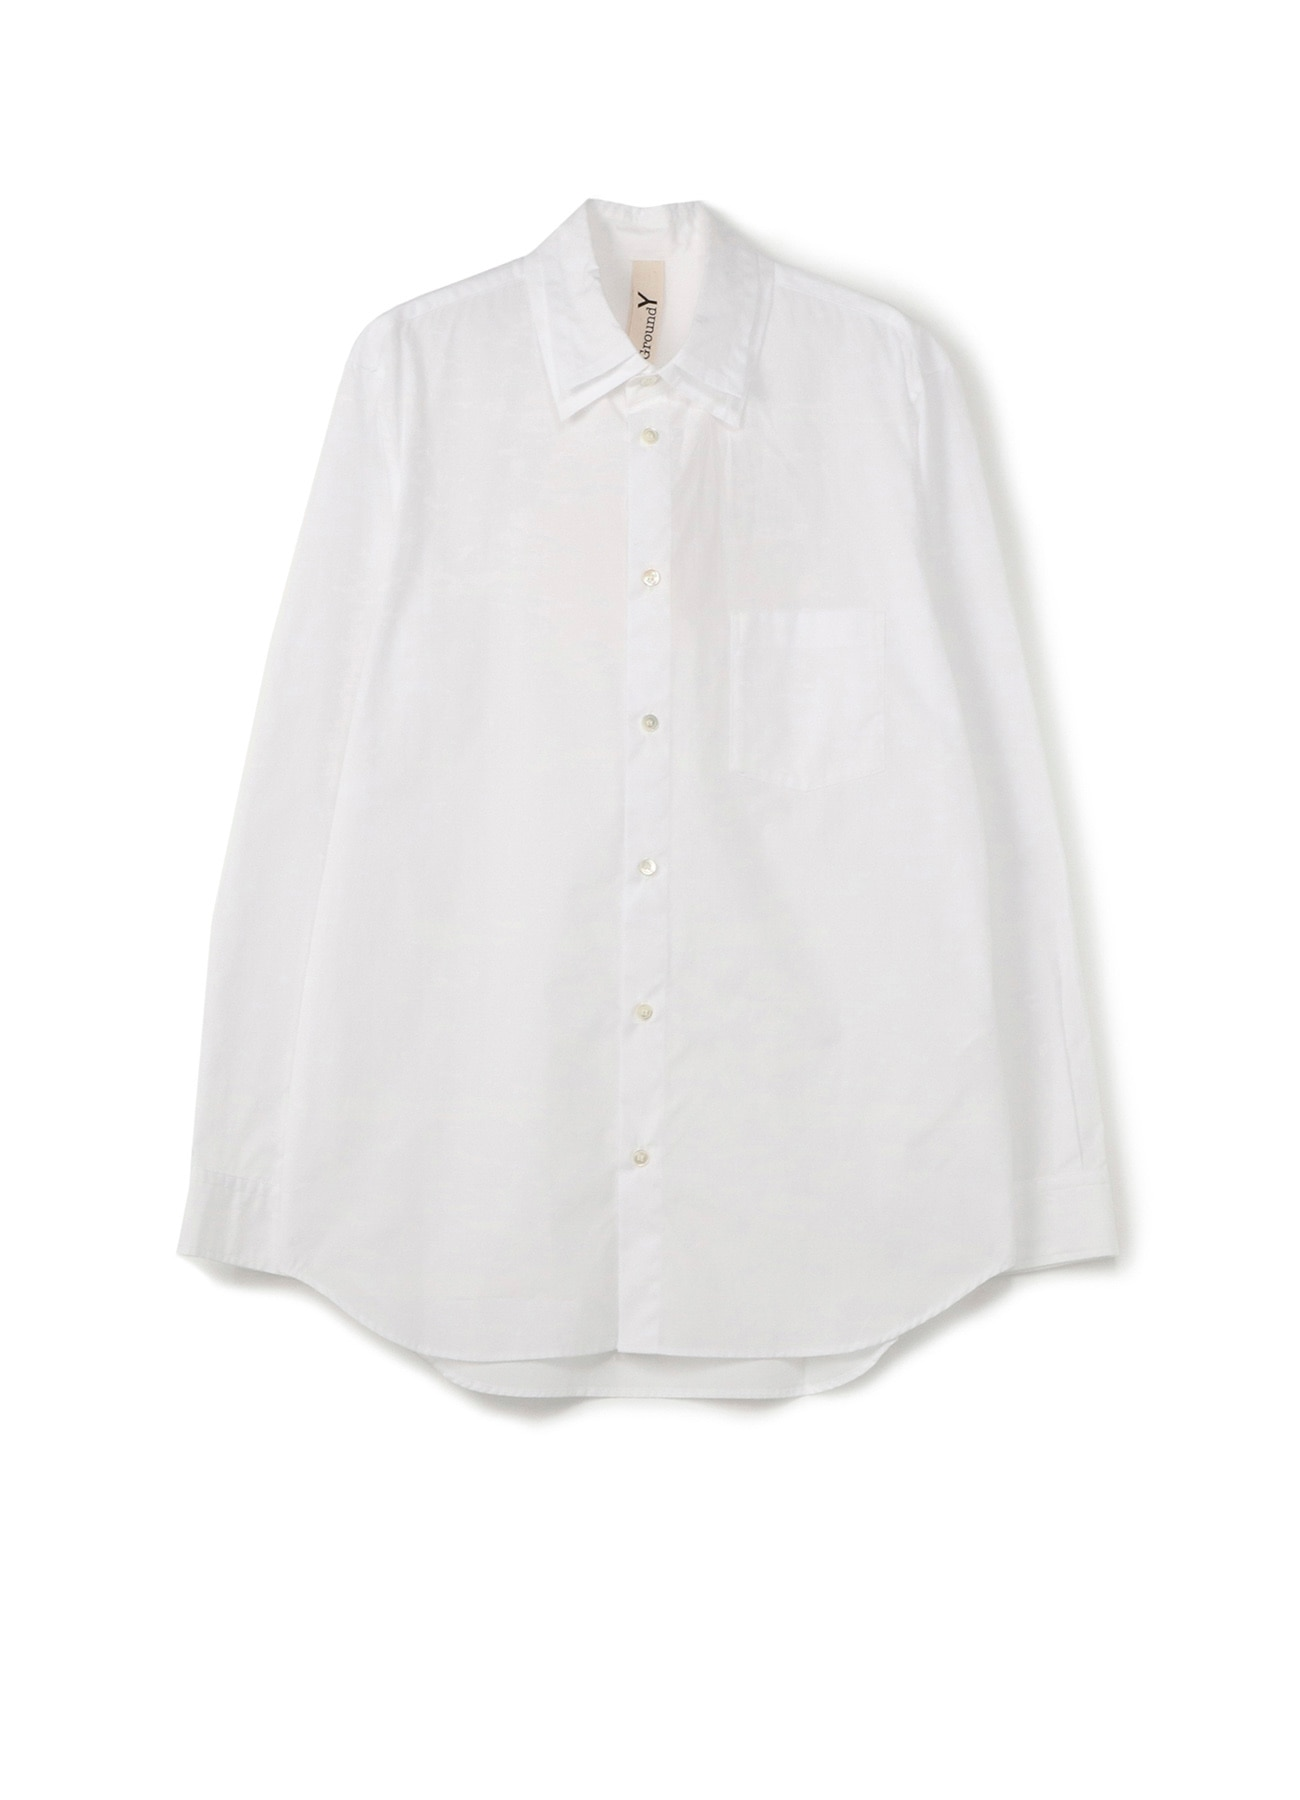 Cotton/ Broadcloth Plane Double Collared Shirt